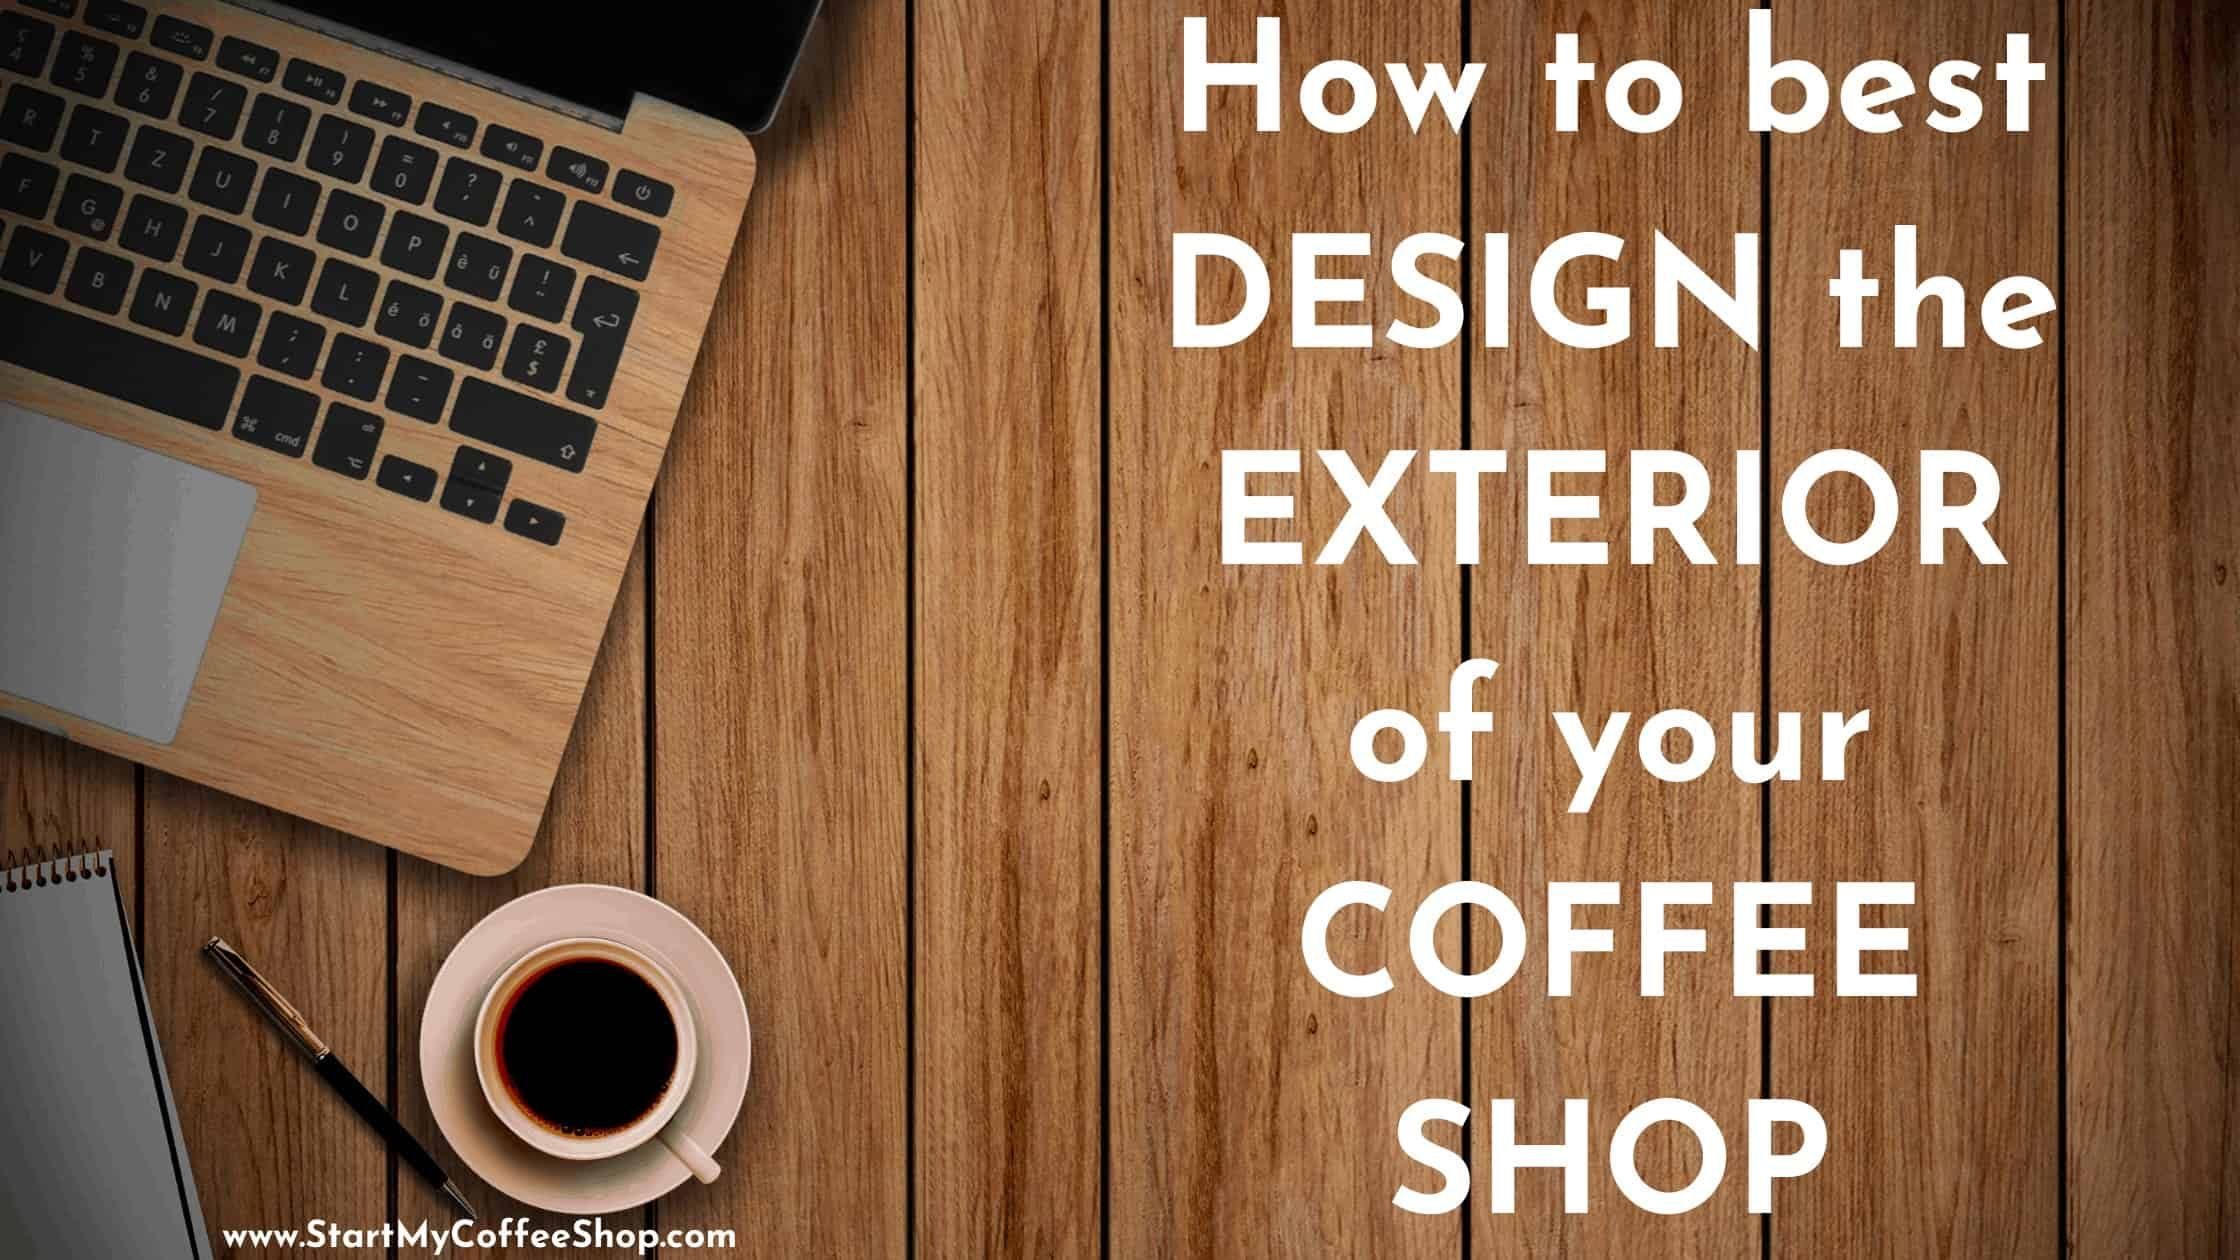 How to best design the exterior of your coffee shop